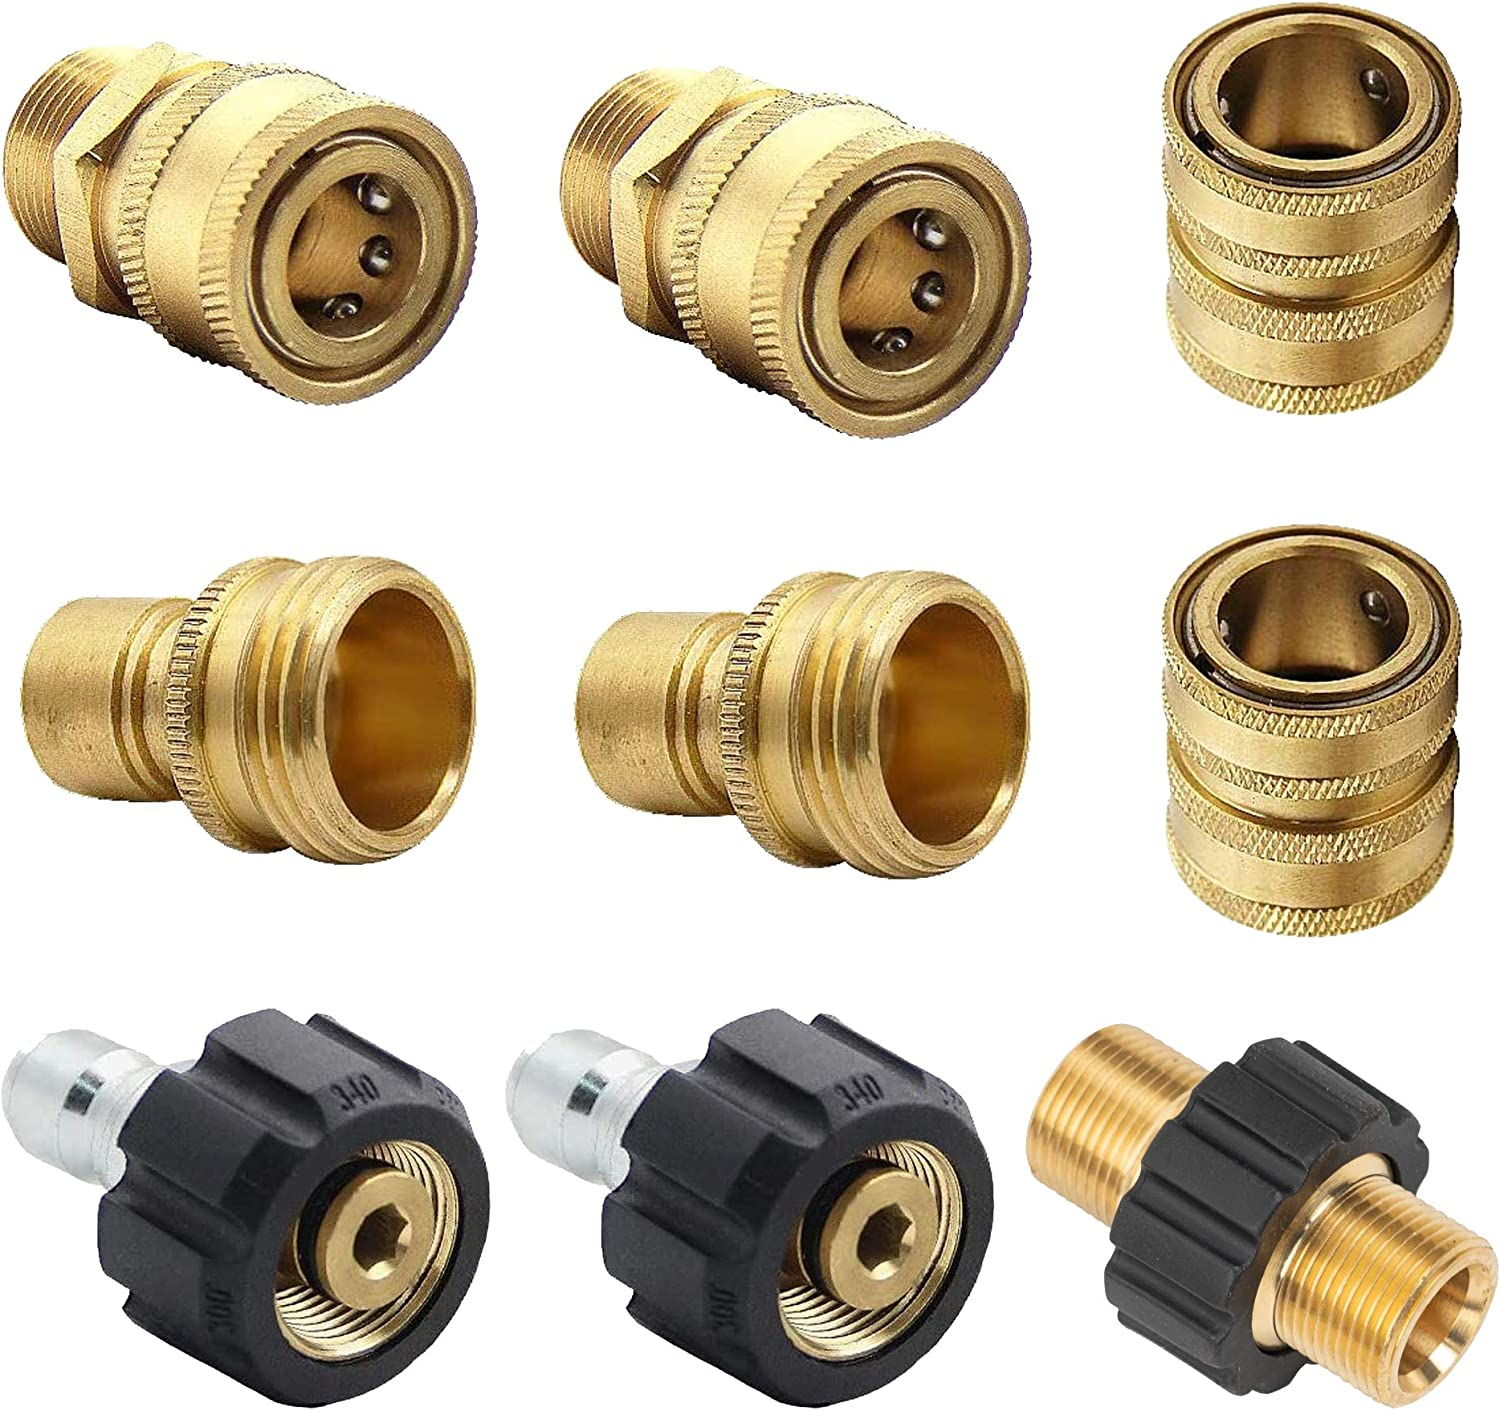 Xiny Tool Pressure Washer Adapter Set, Quick Disconnect Kit with M22 Metric Male Thread Quick Connector, M22 Swivel to 3/8'' Quick Connect, 3/4